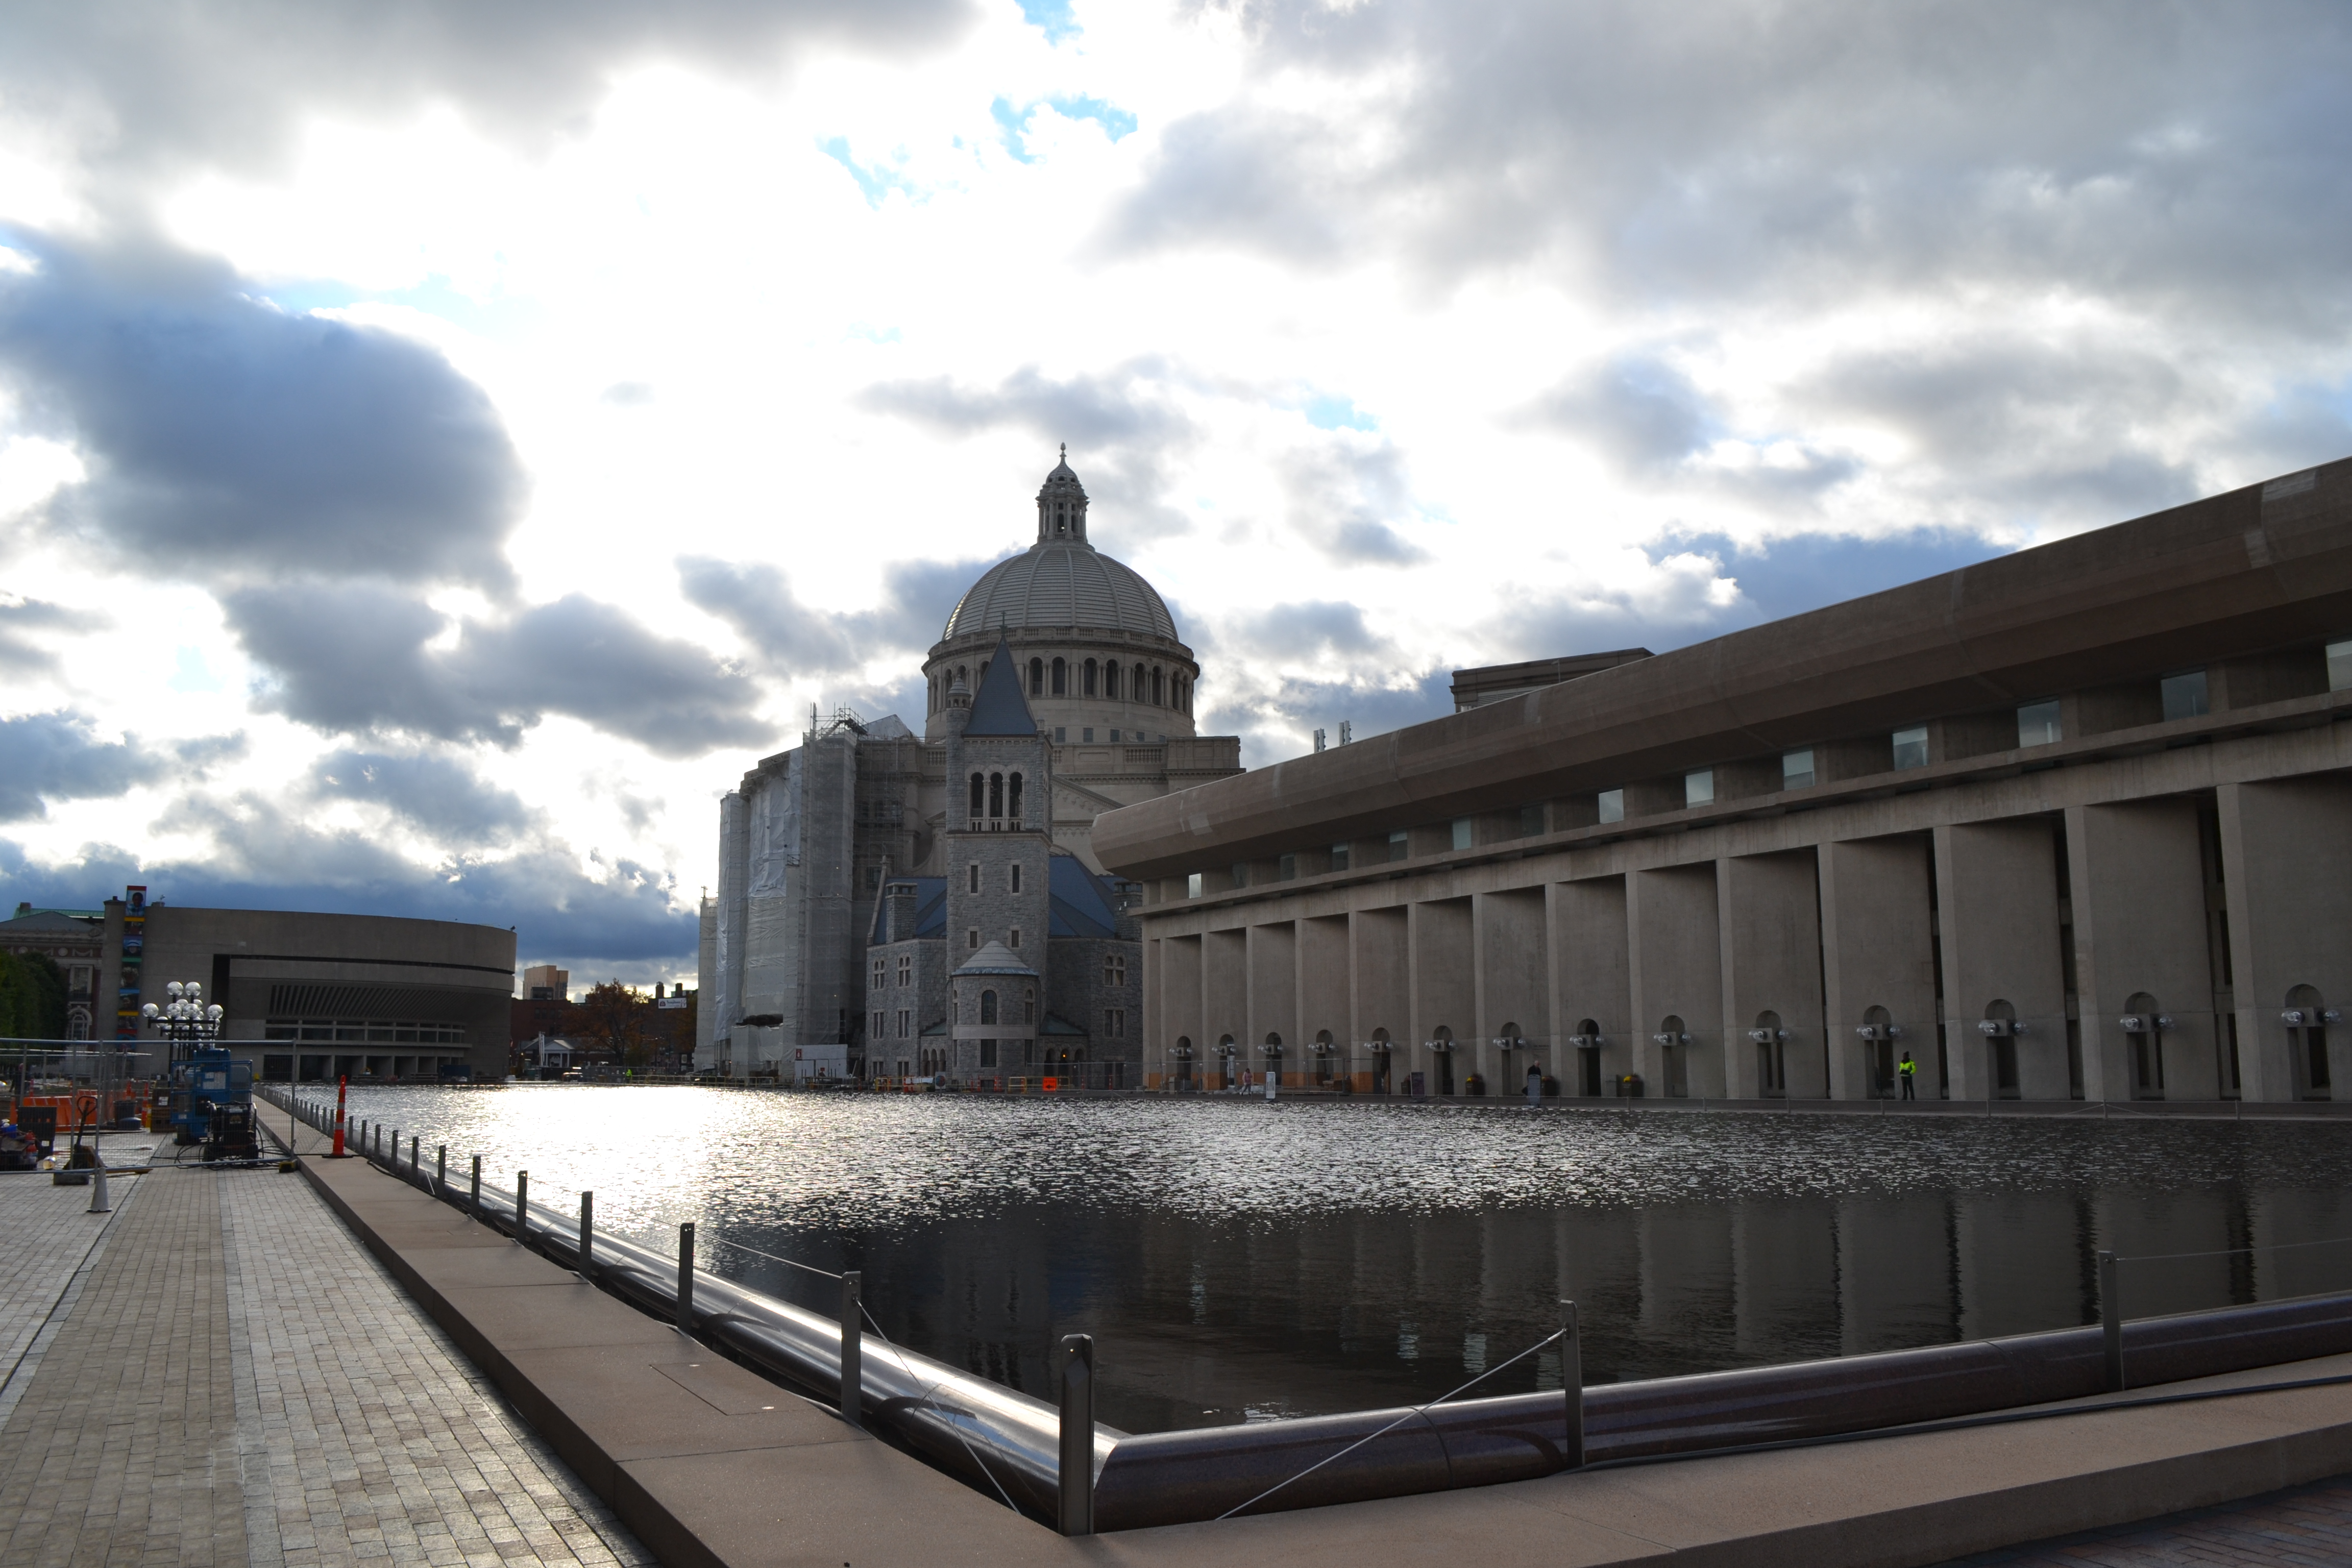 The reflecting pool at the Christian Science Plaza has started flowing again. / Photo by Samantha Barry